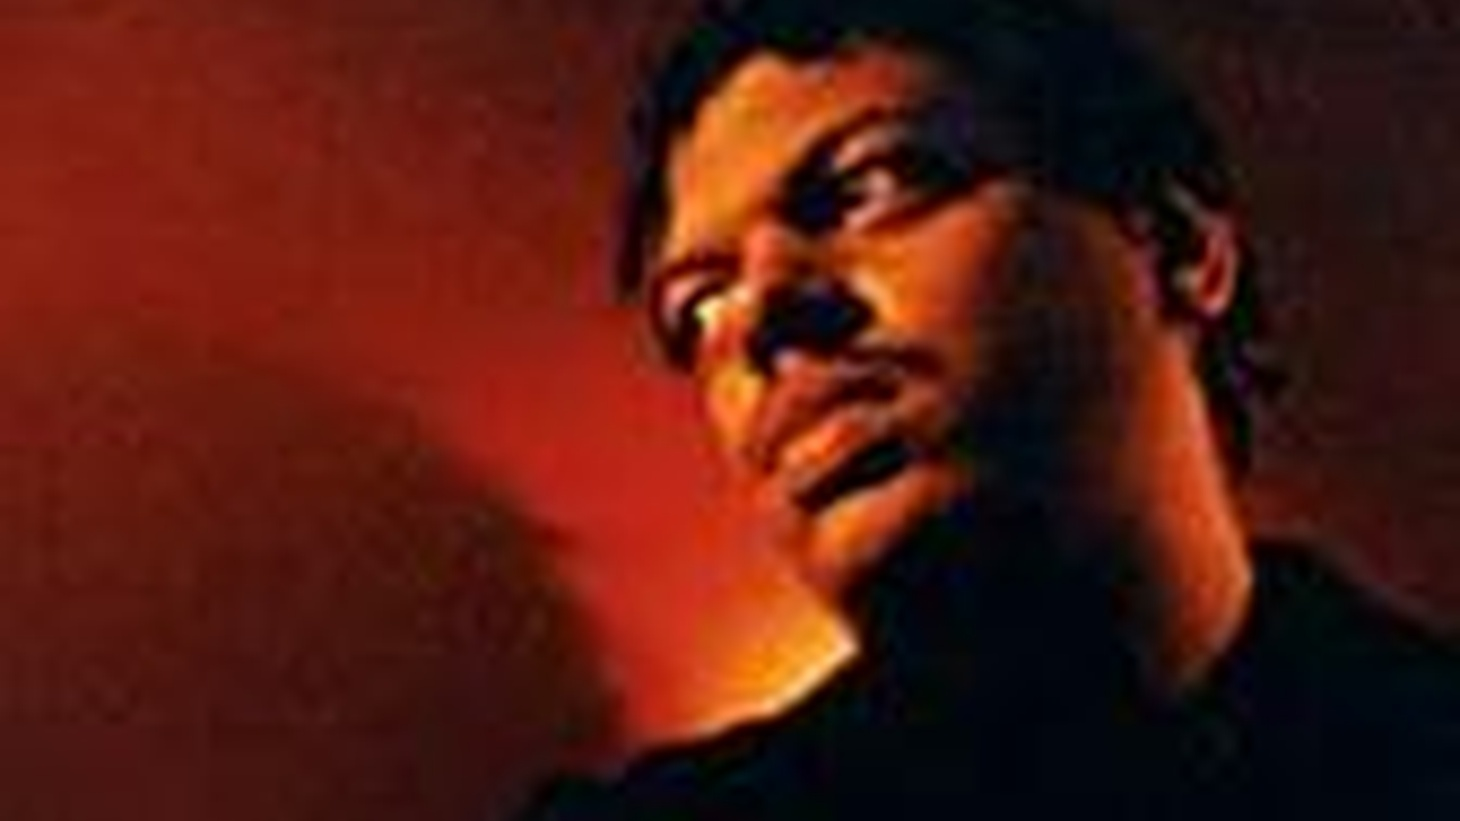 DJ/Producer Kerri Chandler is synonomous with extraordinarily deep house music worldwide. He makes a stop by Nocturna on his tour for his latest compilation Trionisphere Live, which is a live mix of his own artist release Trionisphere.